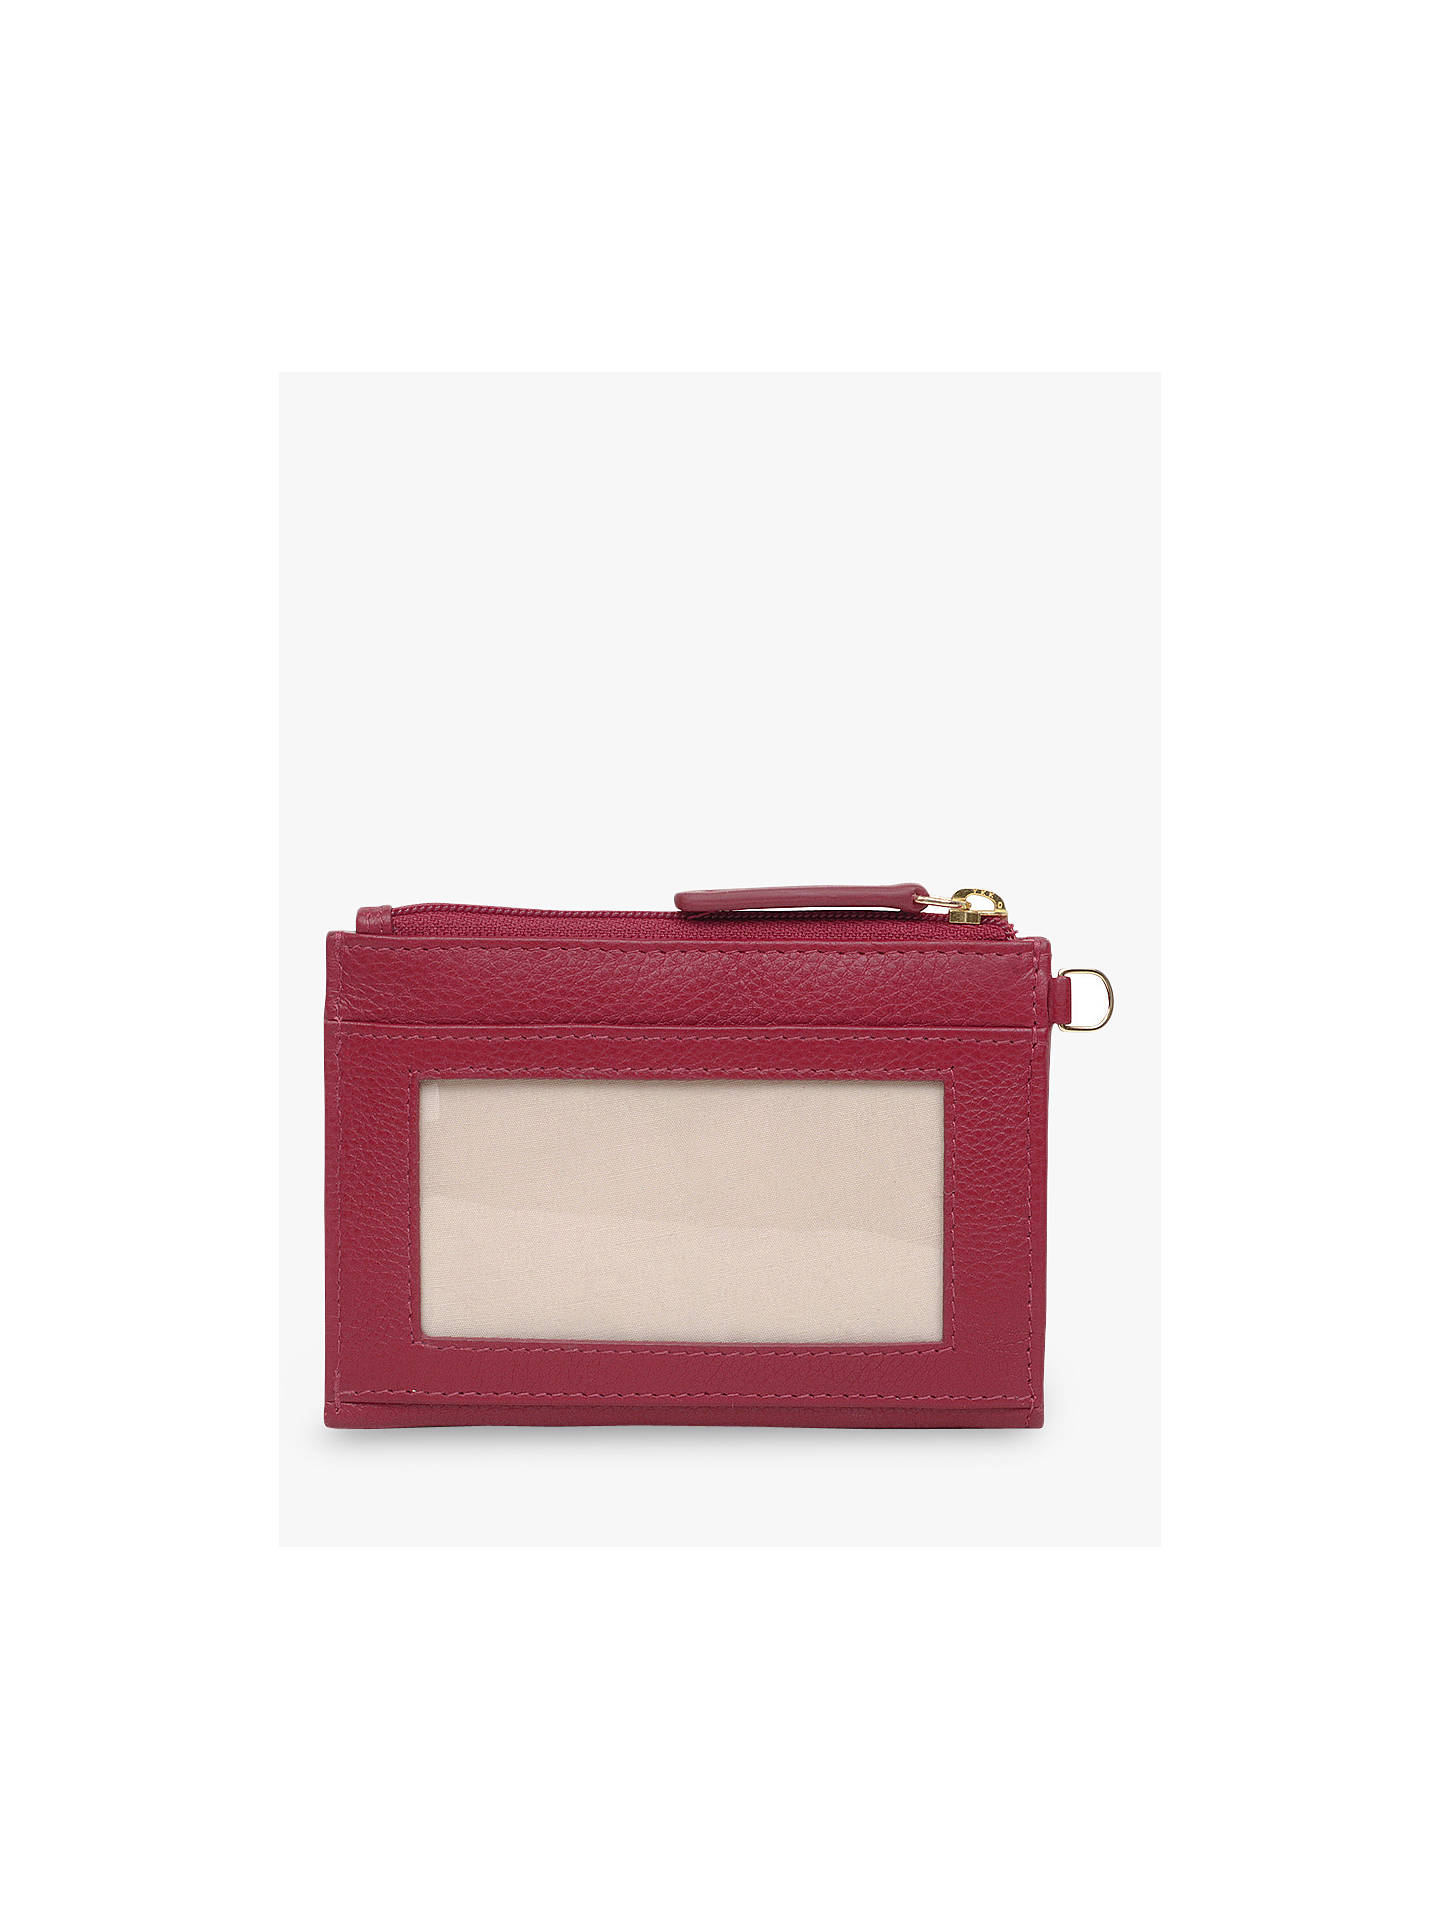 Buy Radley Pockets Leather Small Coin Purse, Red Online at johnlewis.com